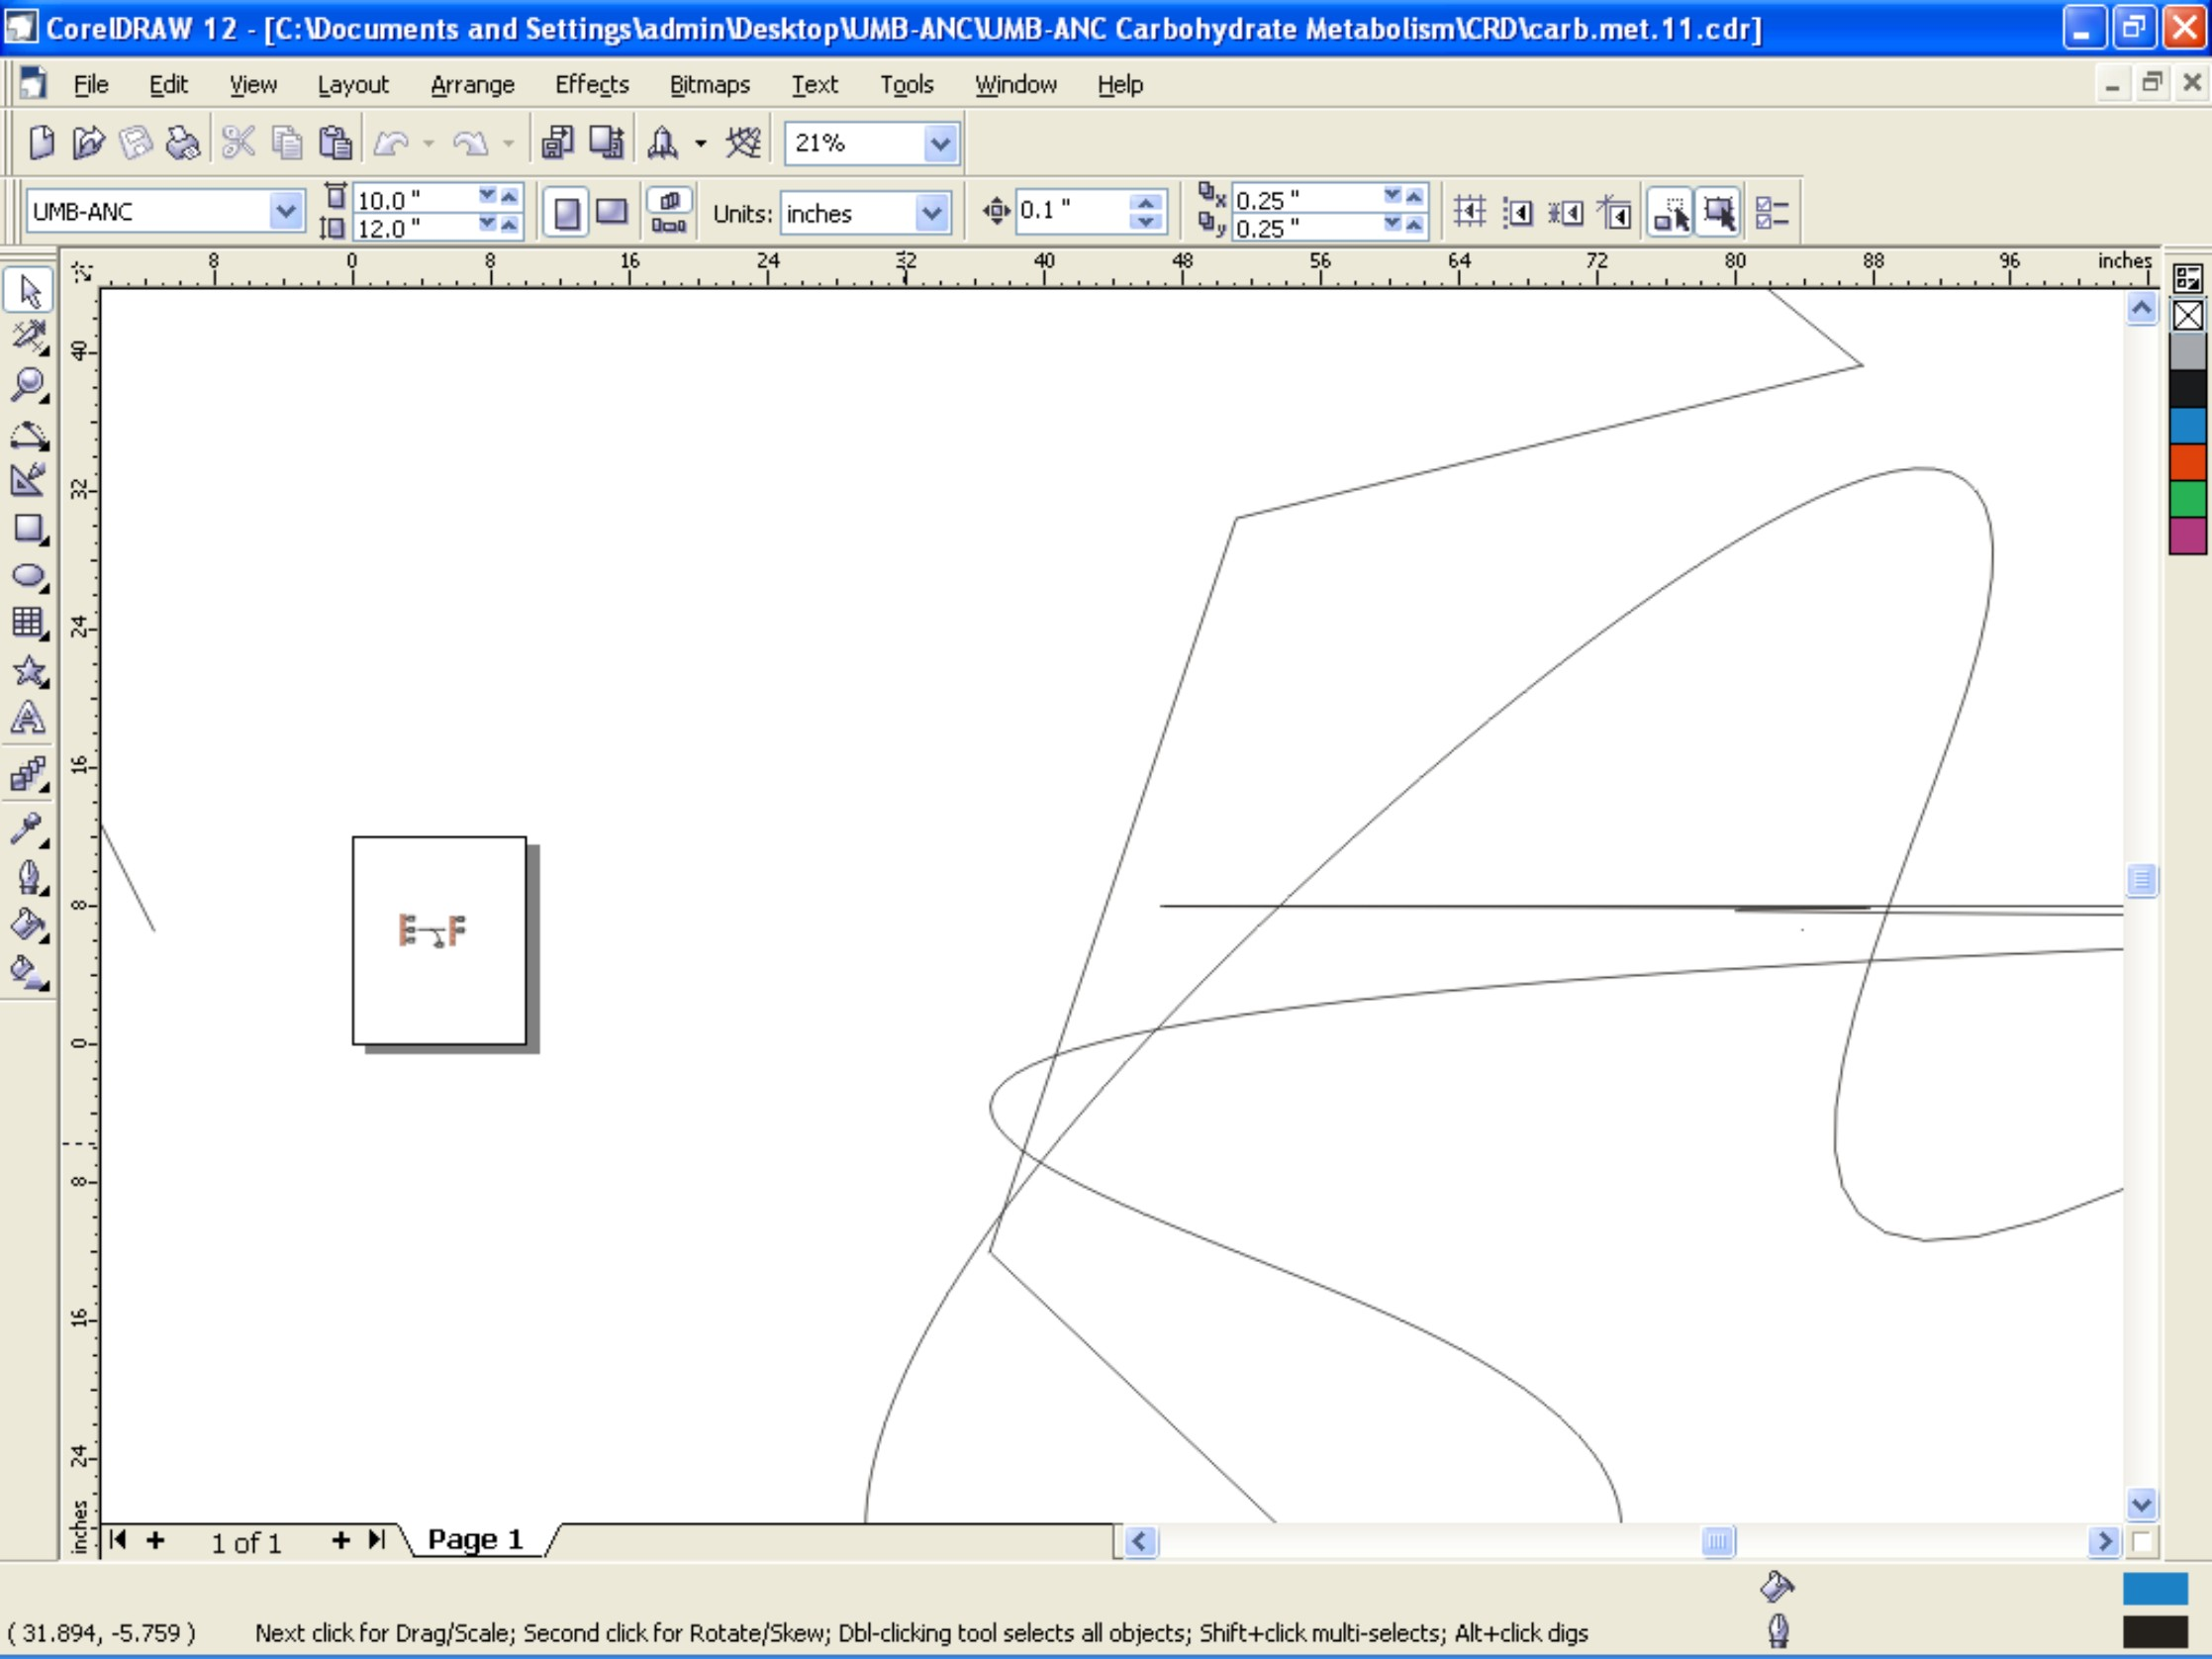 Coreldraw version 12 - Defect 3